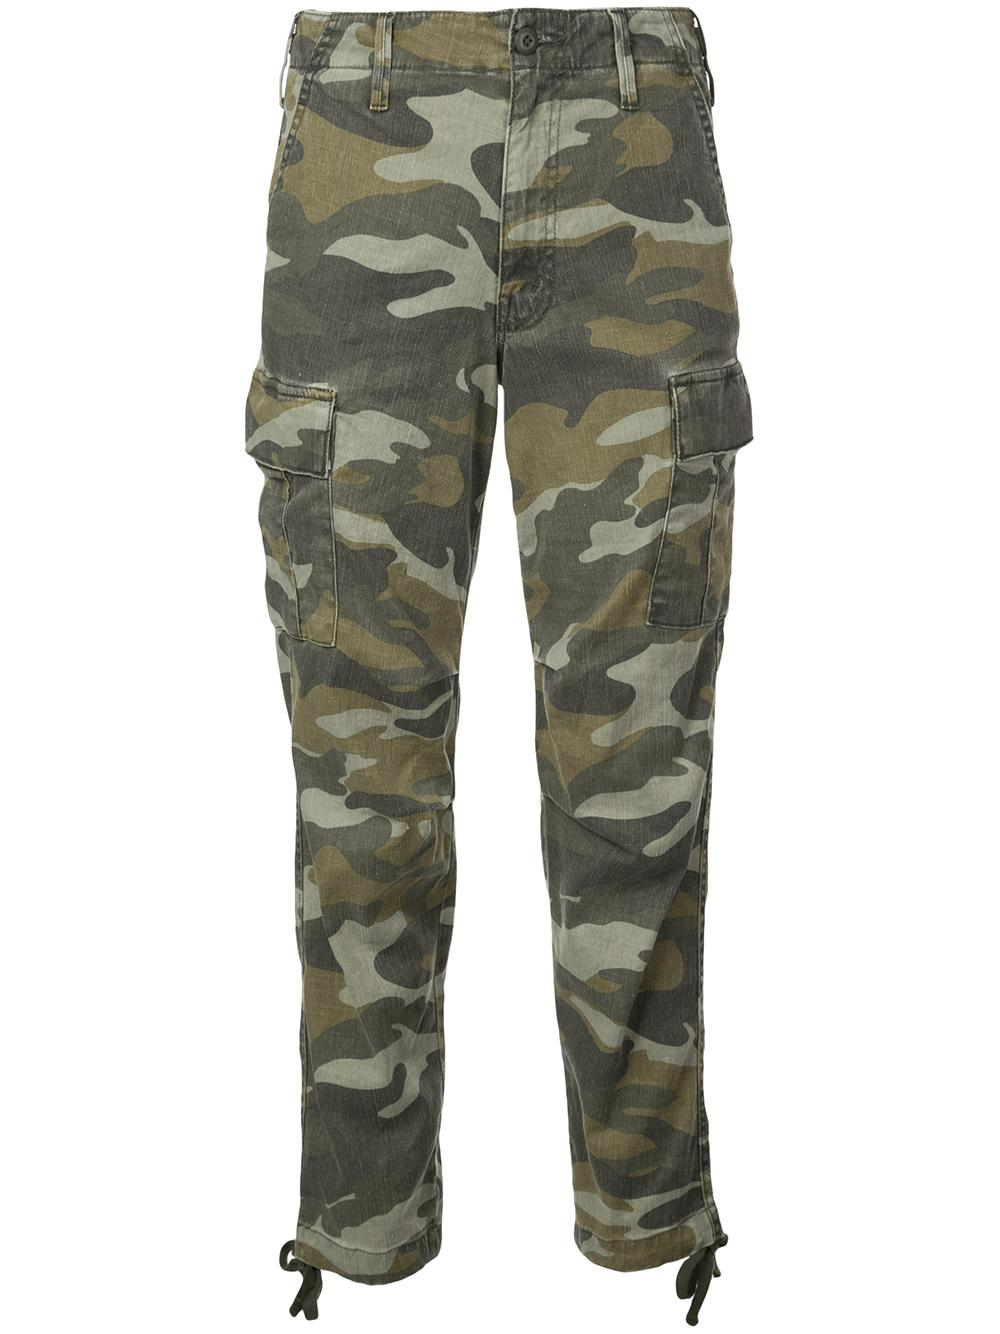 The Sir Yes Sir Camo Cargo Pant